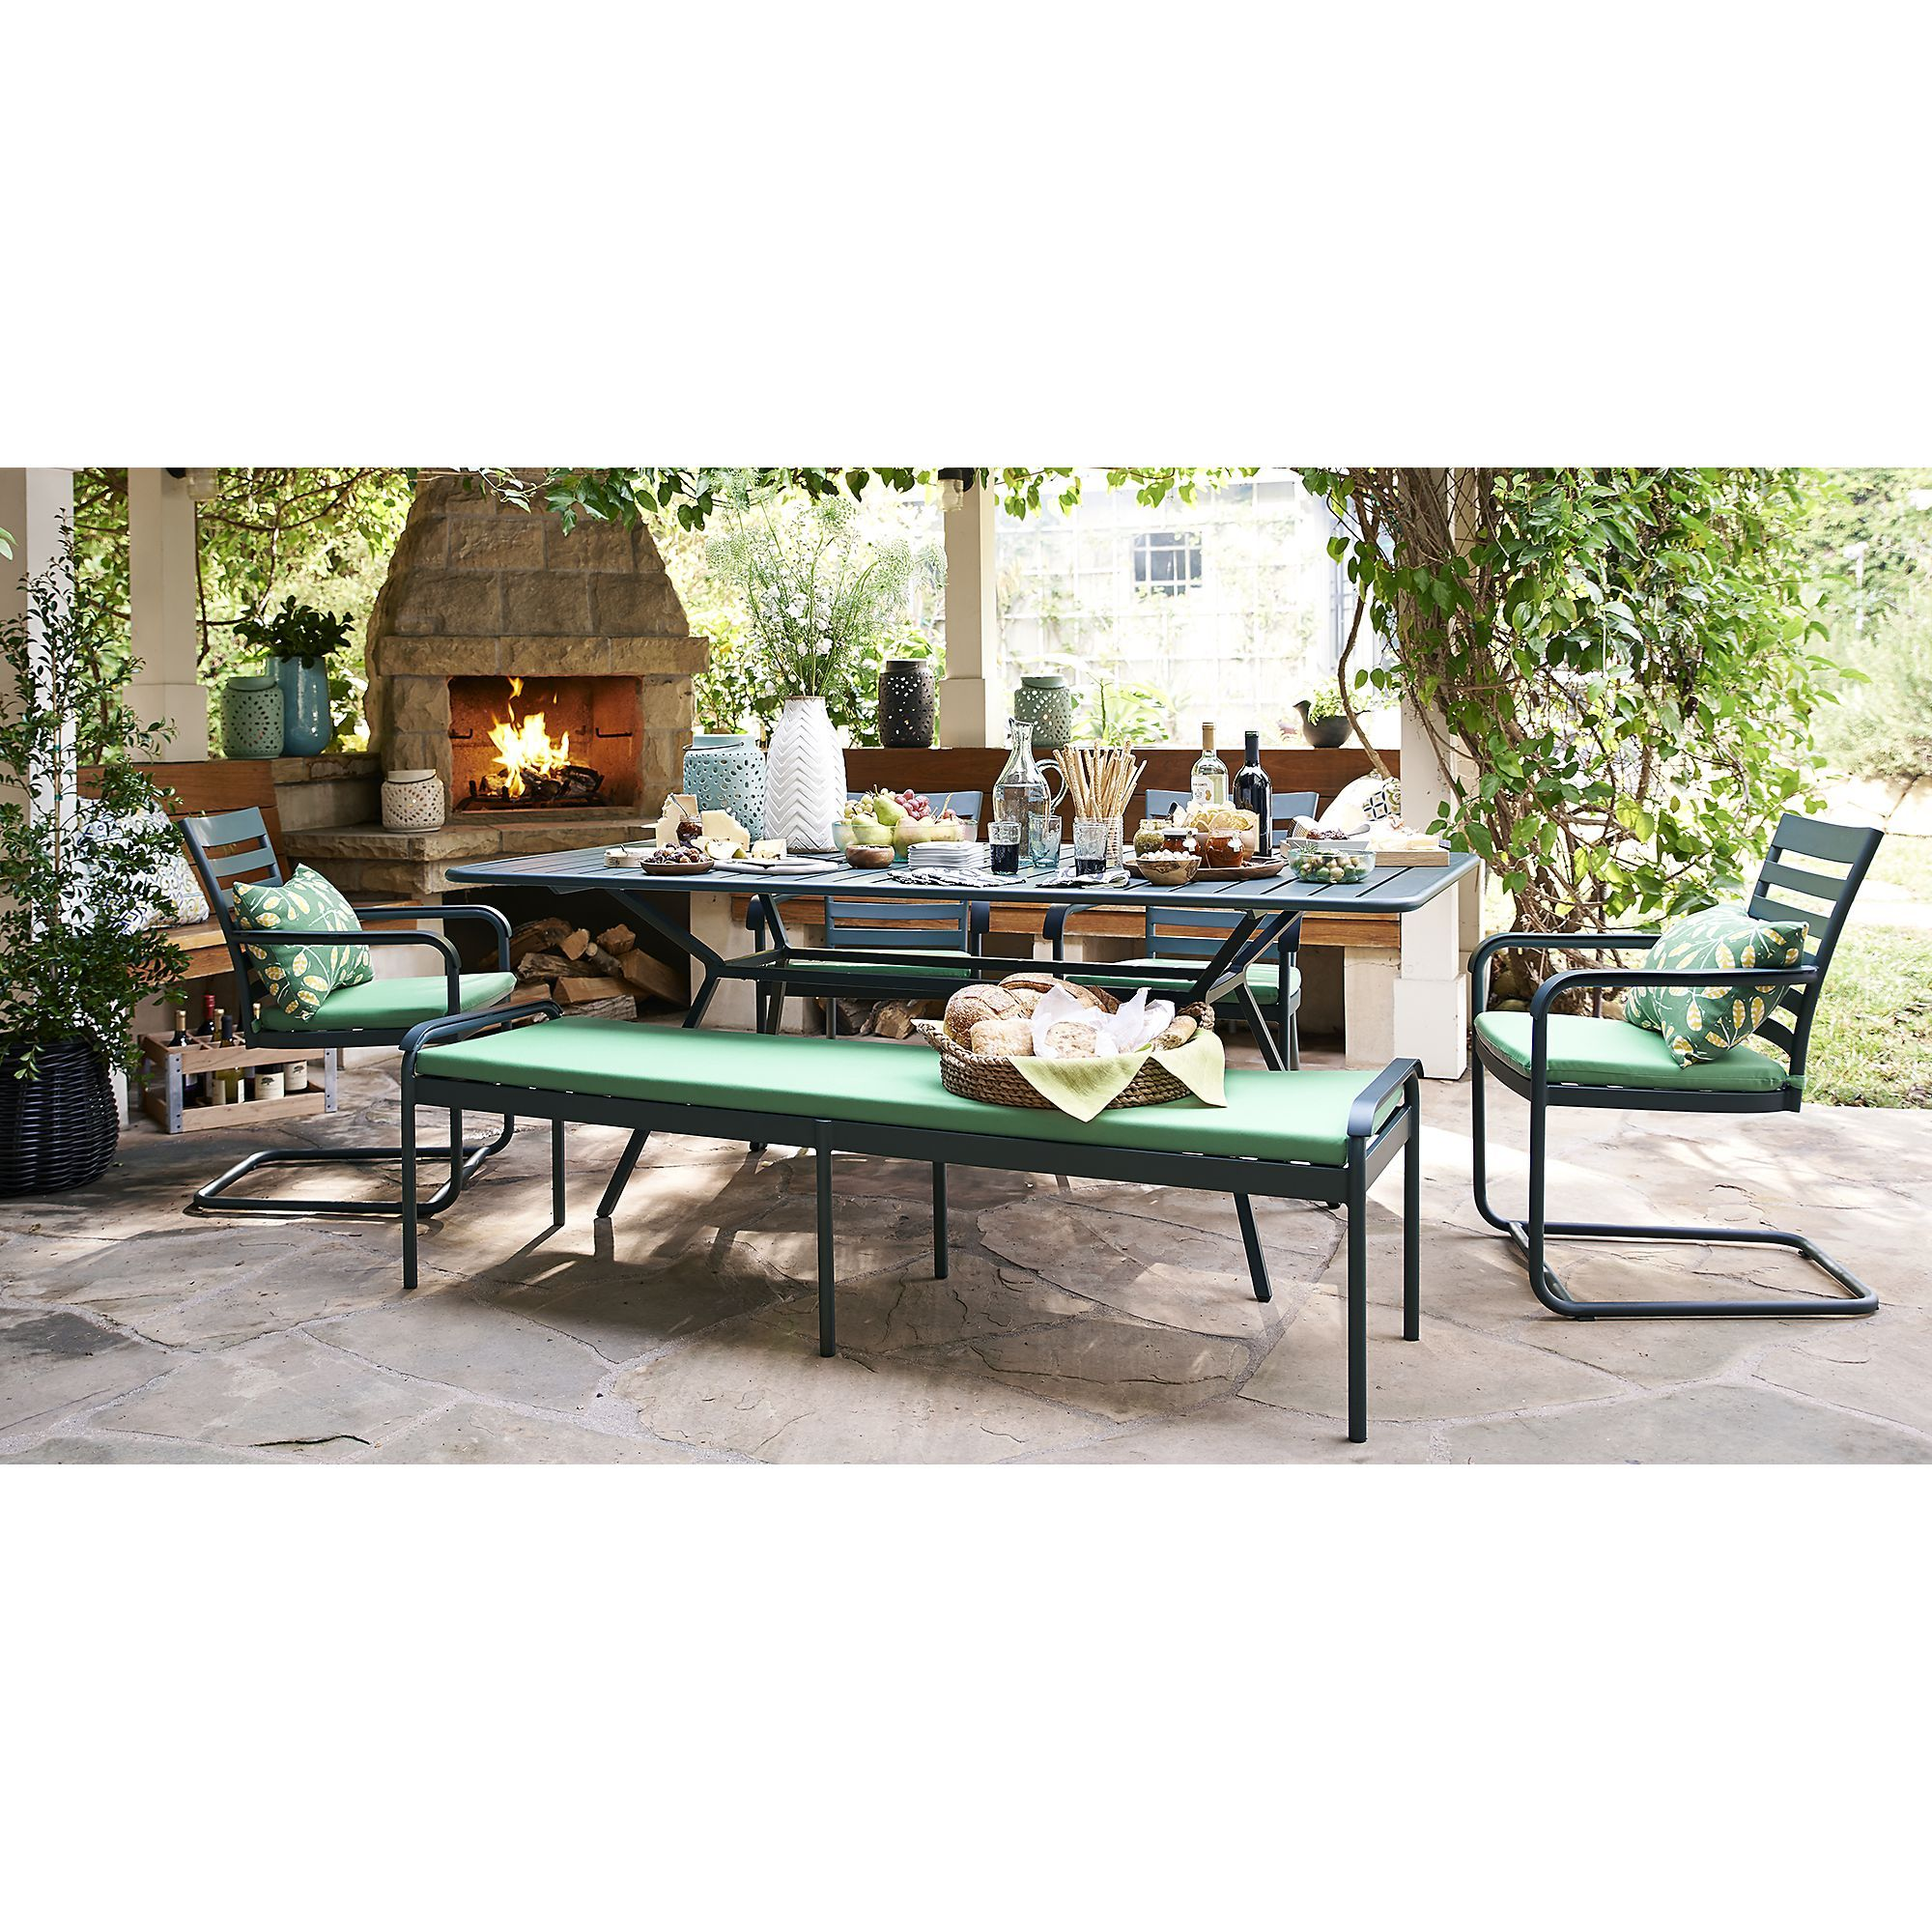 Orleans 91 5 Large Rectangular Dining Table In Outdoor Dining